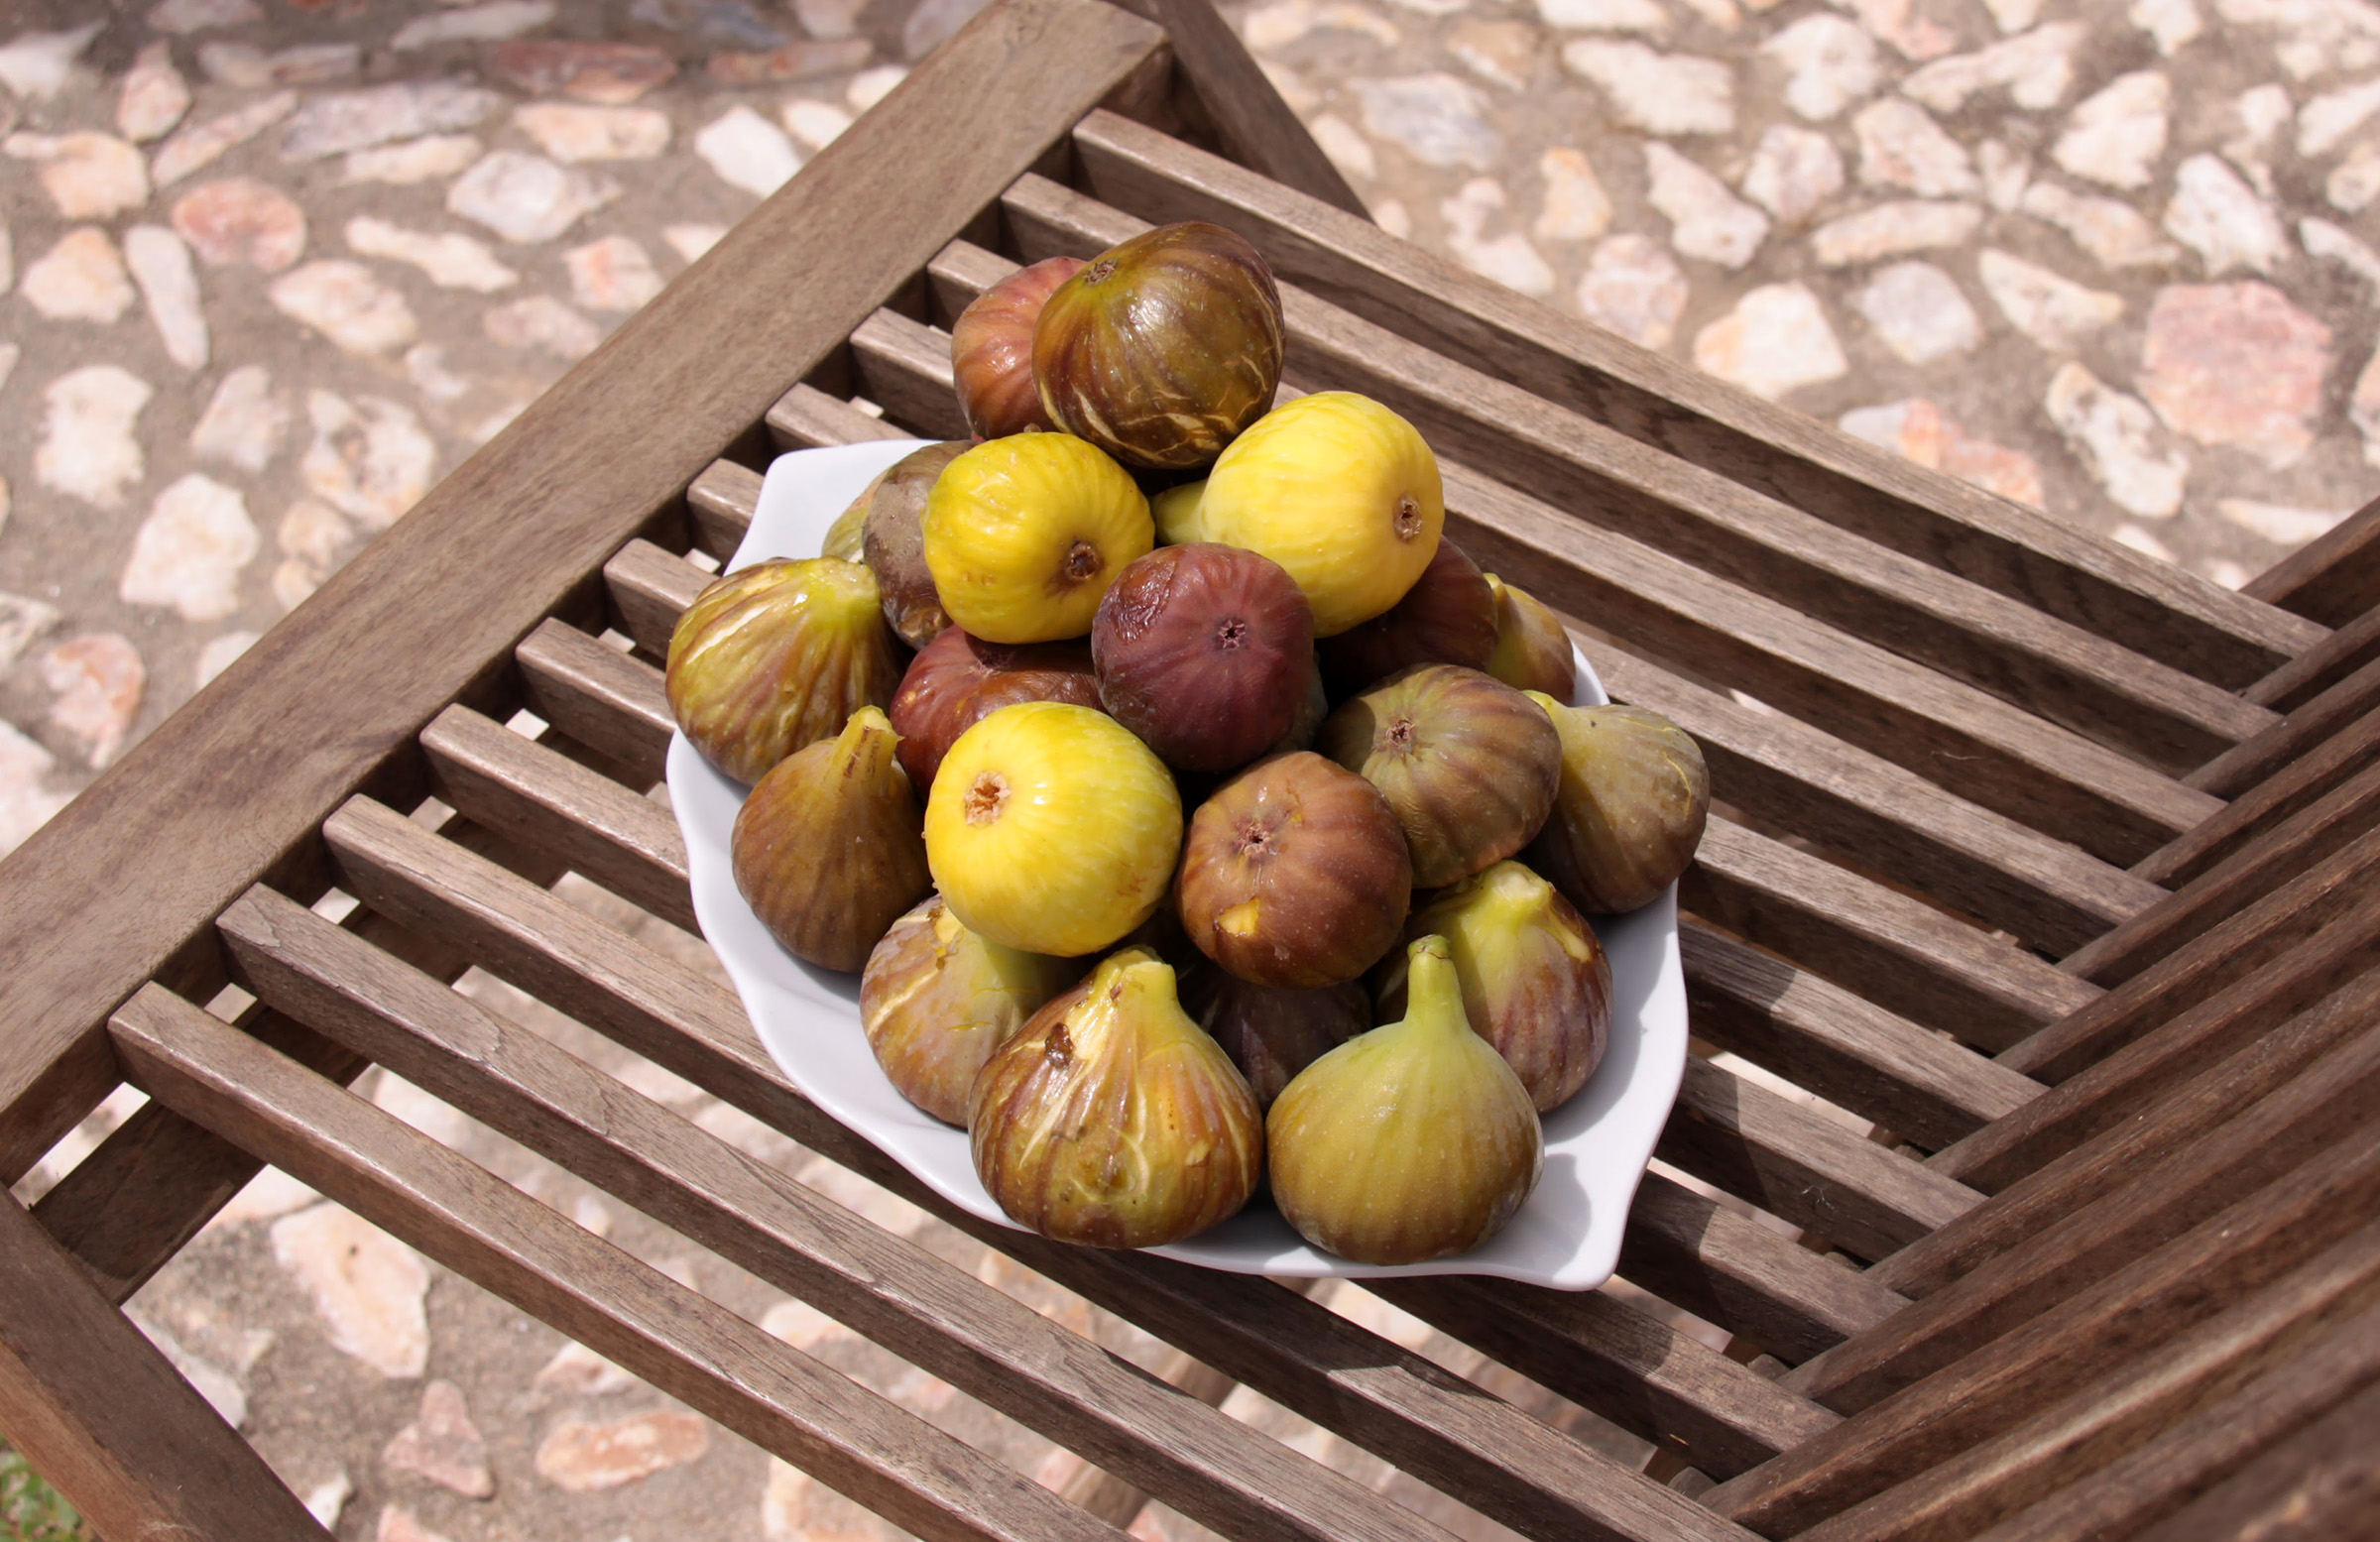 Caught some amazing figs